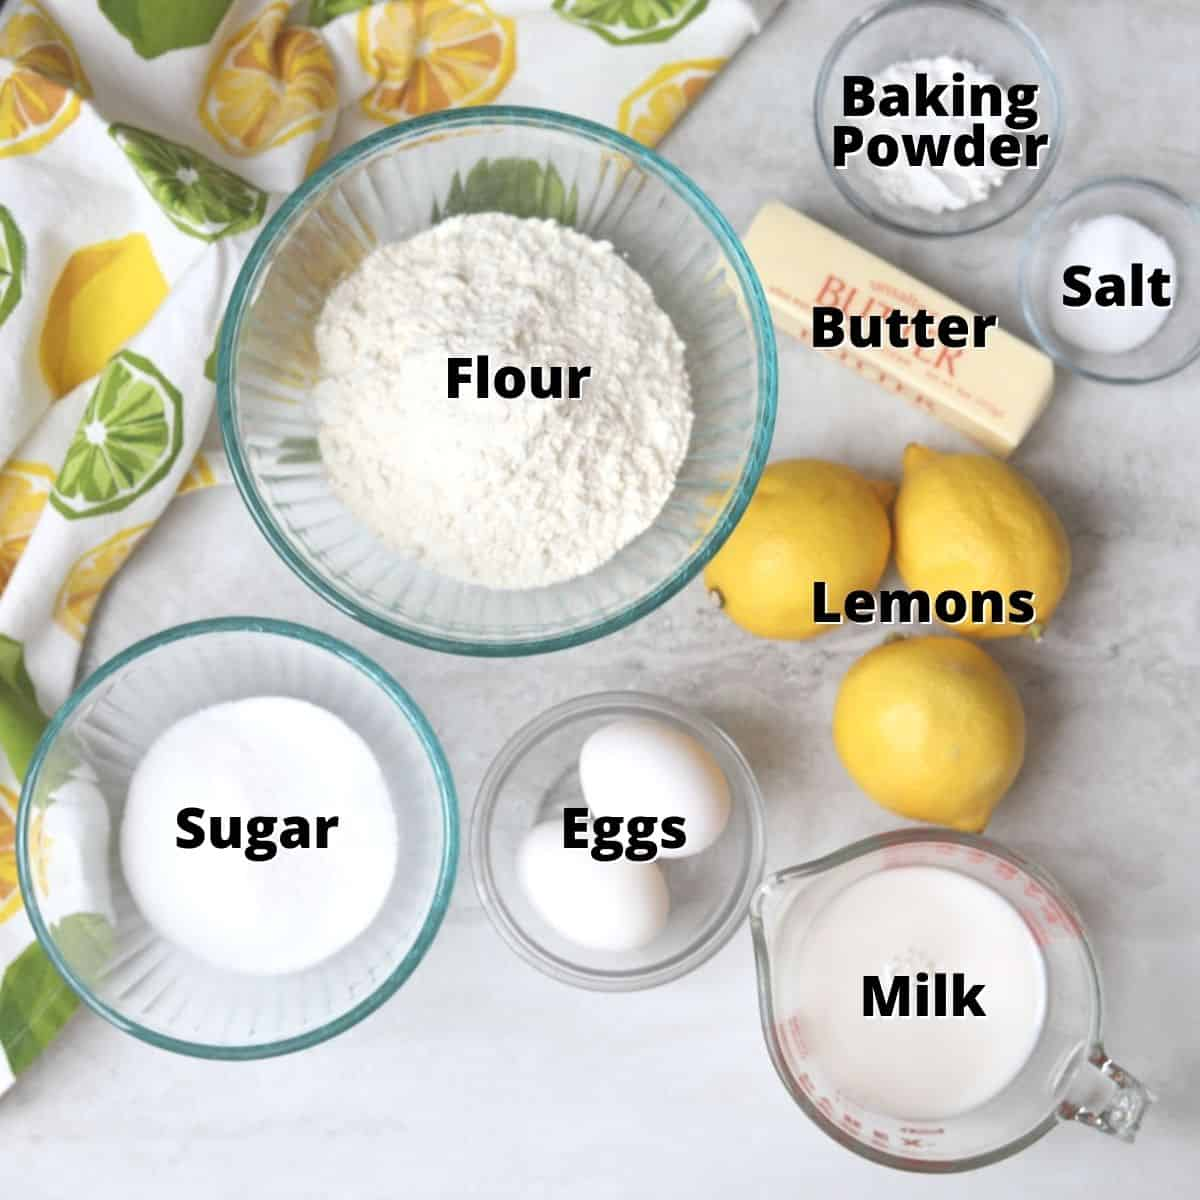 Ingredients for lemon bread labeled on white counter.